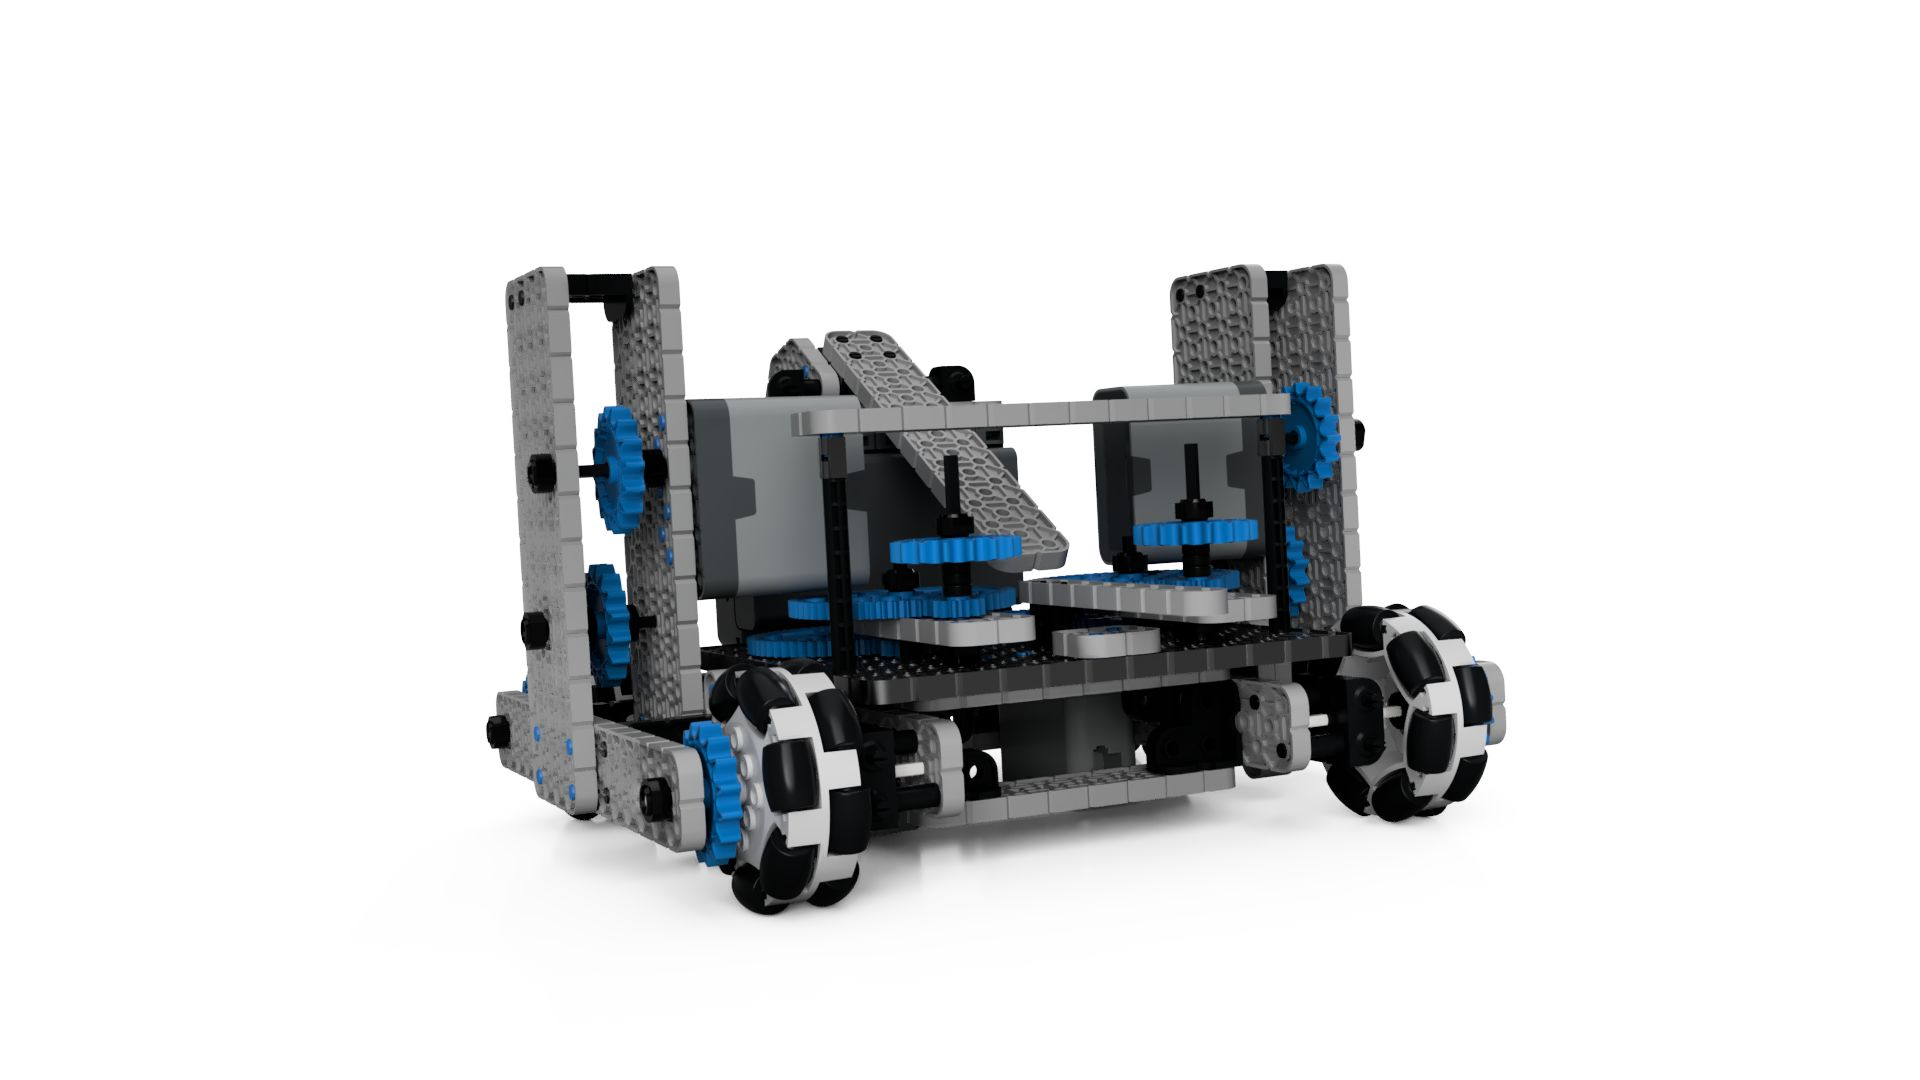 Vex-iq---ball-trigger-robot-2019-jun-05-08-33-04pm-000-customizedview24158884354-png-3500-3500